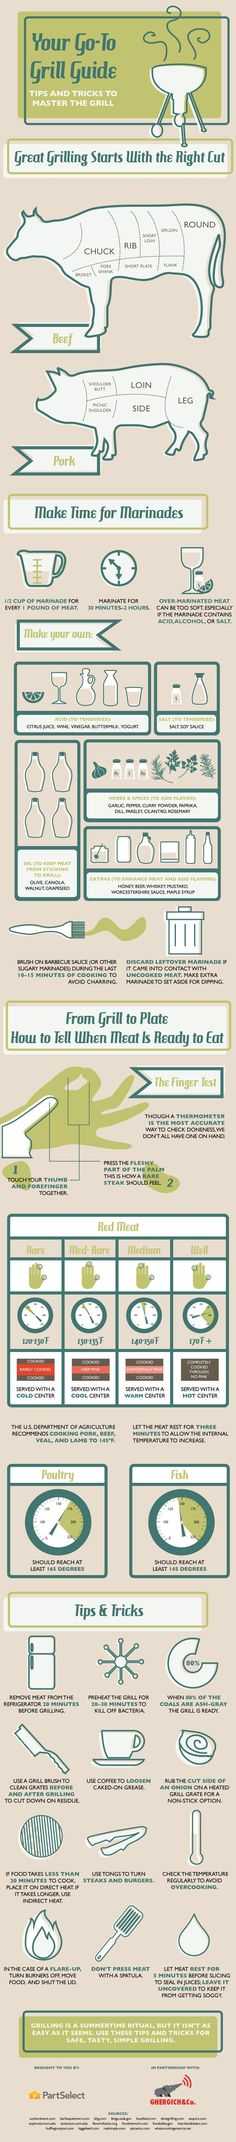 Your Go-To Grill guide